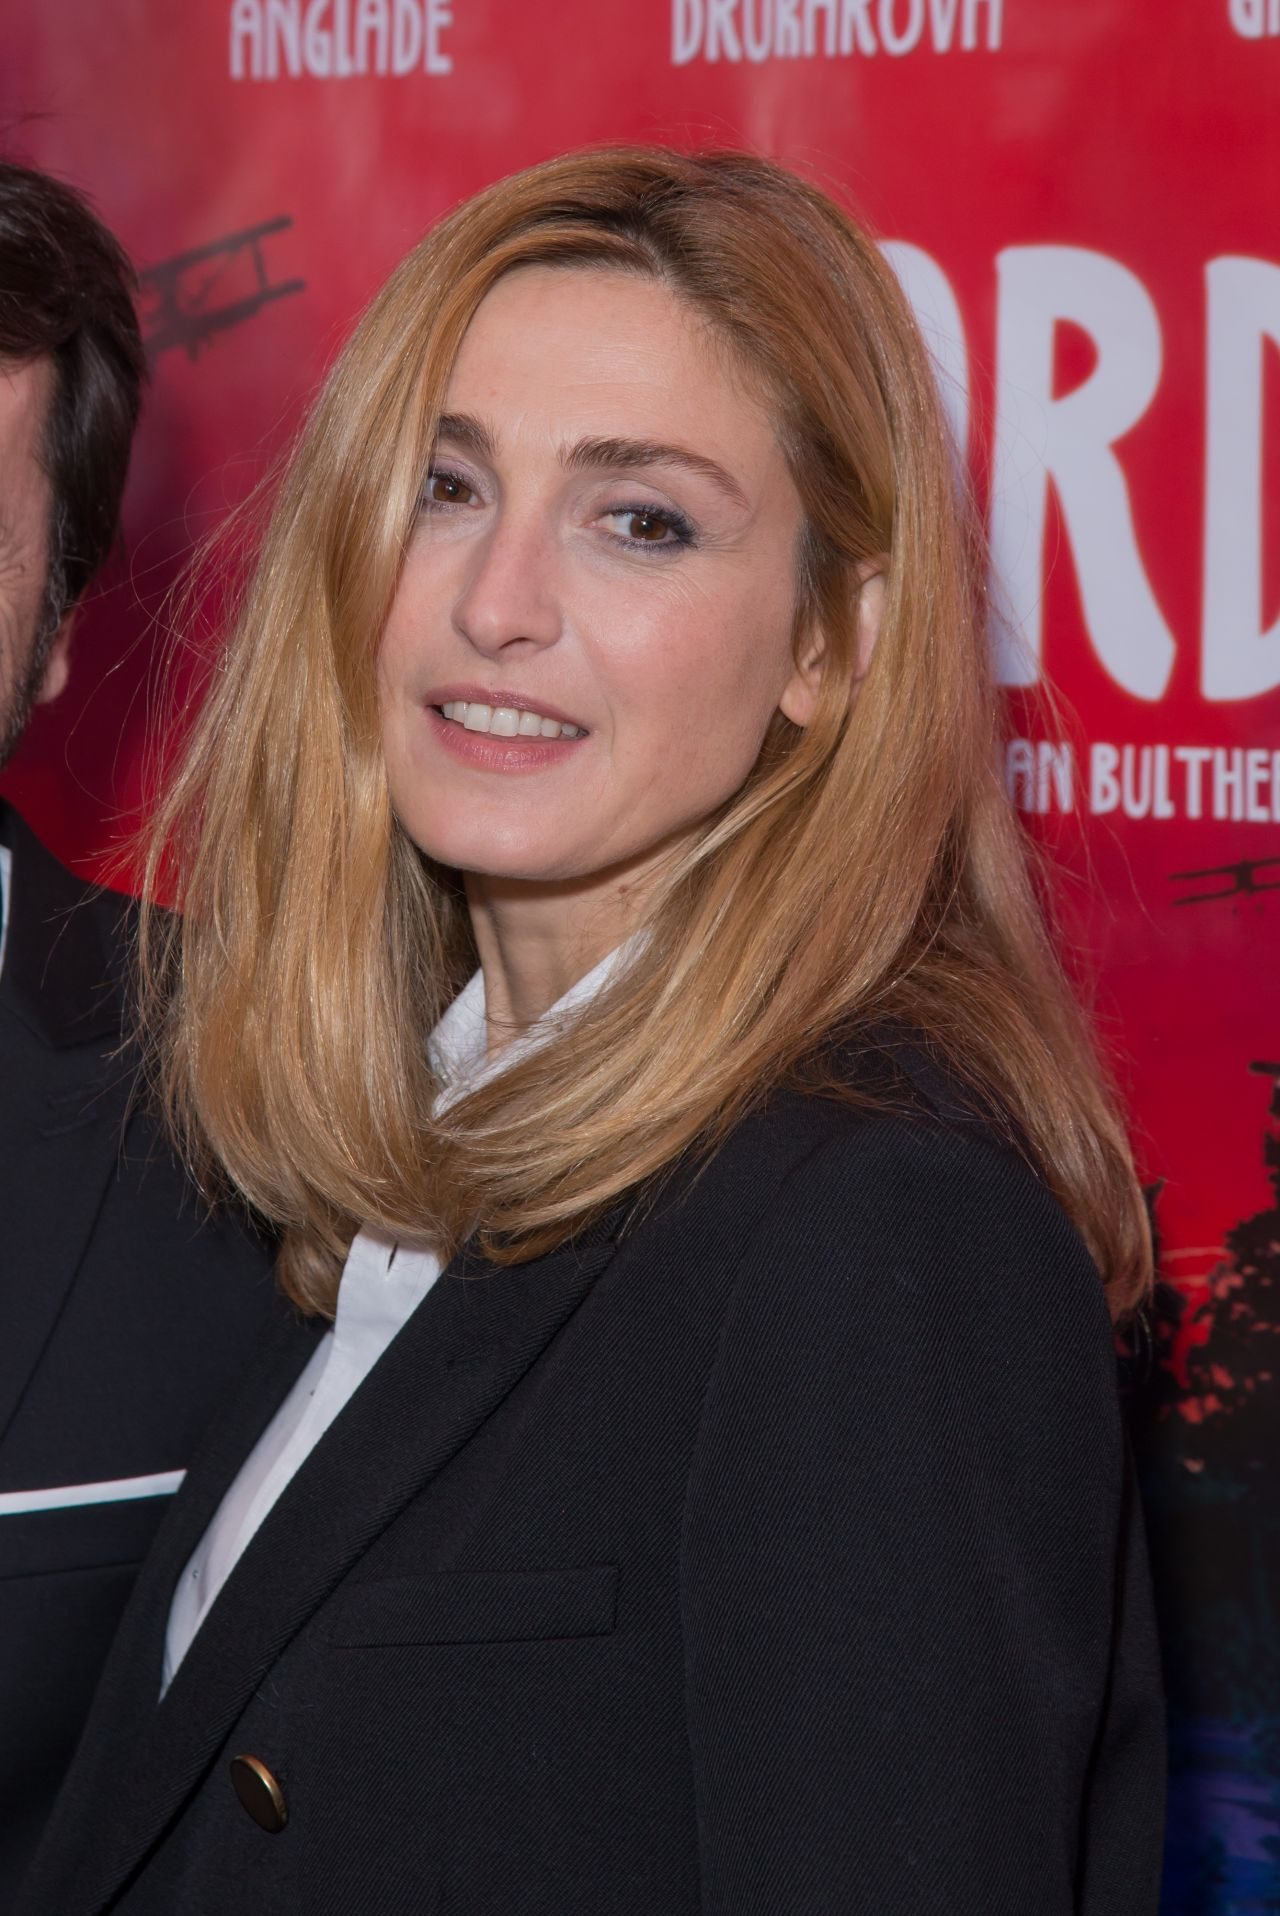 julie gayet twitterjulie gayet height, julie gayet famille, julie gayet photos, julie gayet, julie gayet hollande, julie gayet françois hollande, julie gayet enceinte, julie gayet et françois hollande, julie gayet et hollande, julie gayet maiwenn, julie gayet filmography, julie gayet twitter, julie gayet mathieu kassovitz, julie gayet voici, julie gayet film, julie gayet interview, julie gayet et son mari, julie gayet vie privée, julie gayet compagnon, julie gayet maman